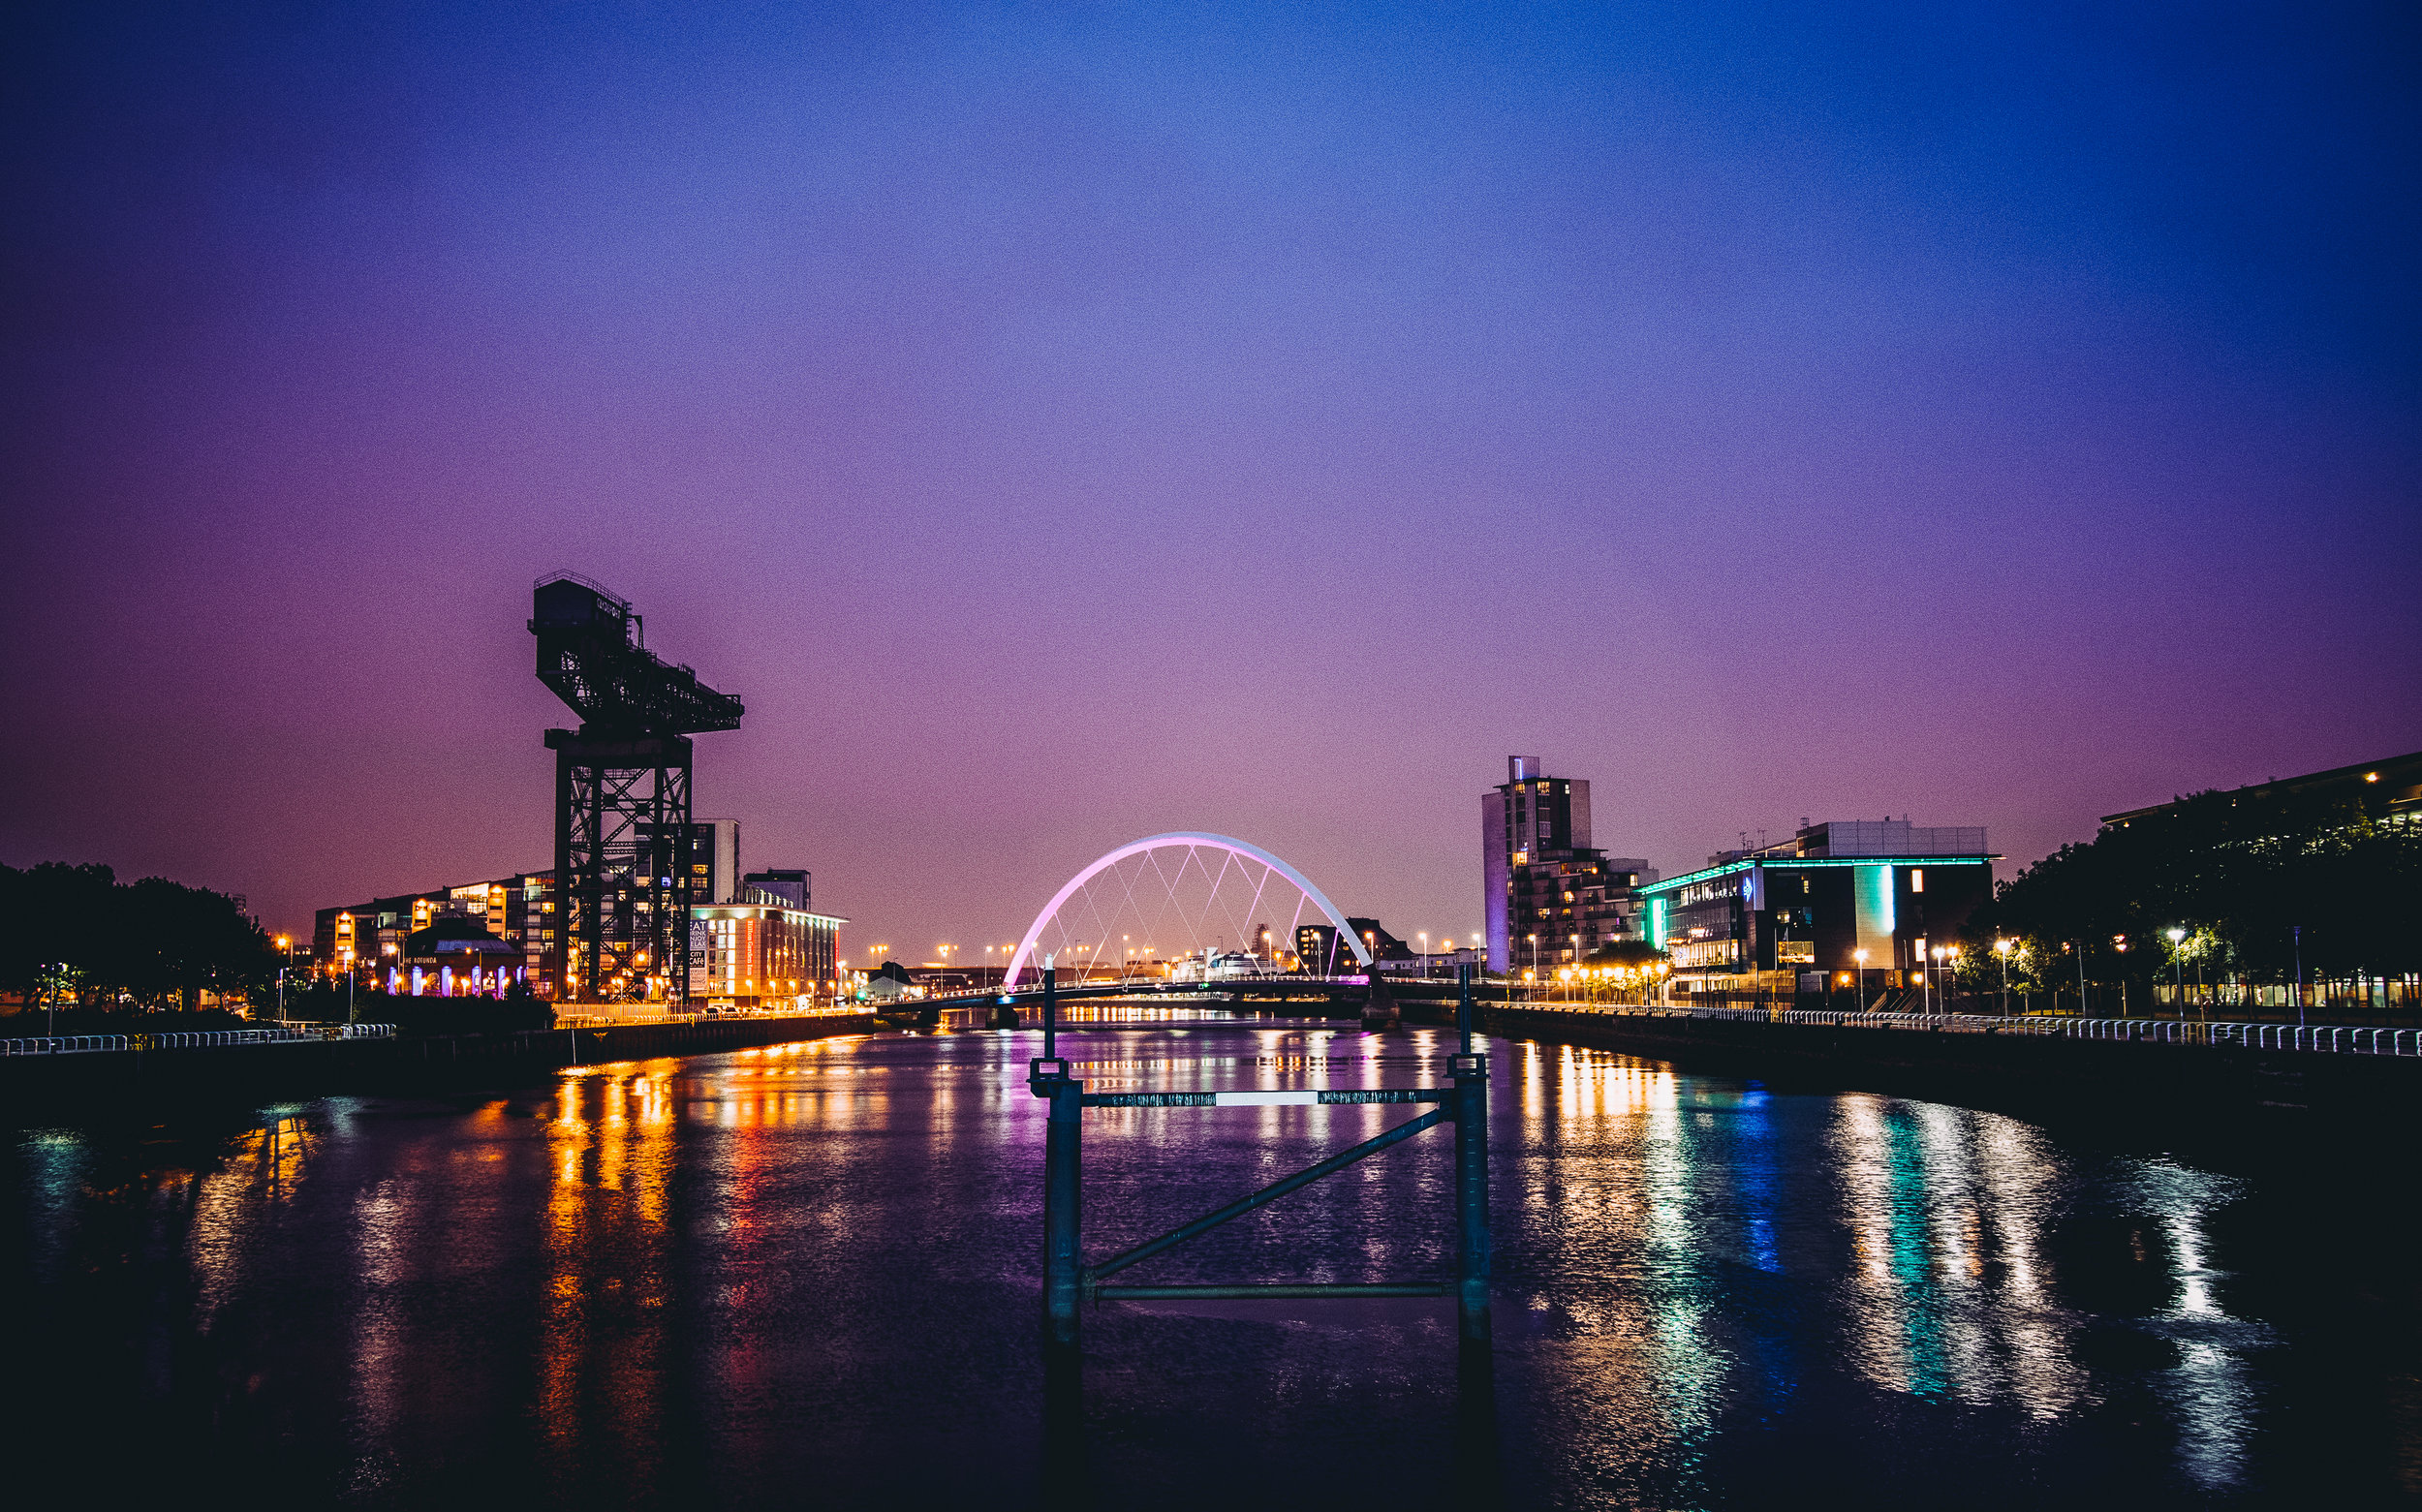 The River Clyde. Don't let anyone tell you Glasgow isn't a pretty place.